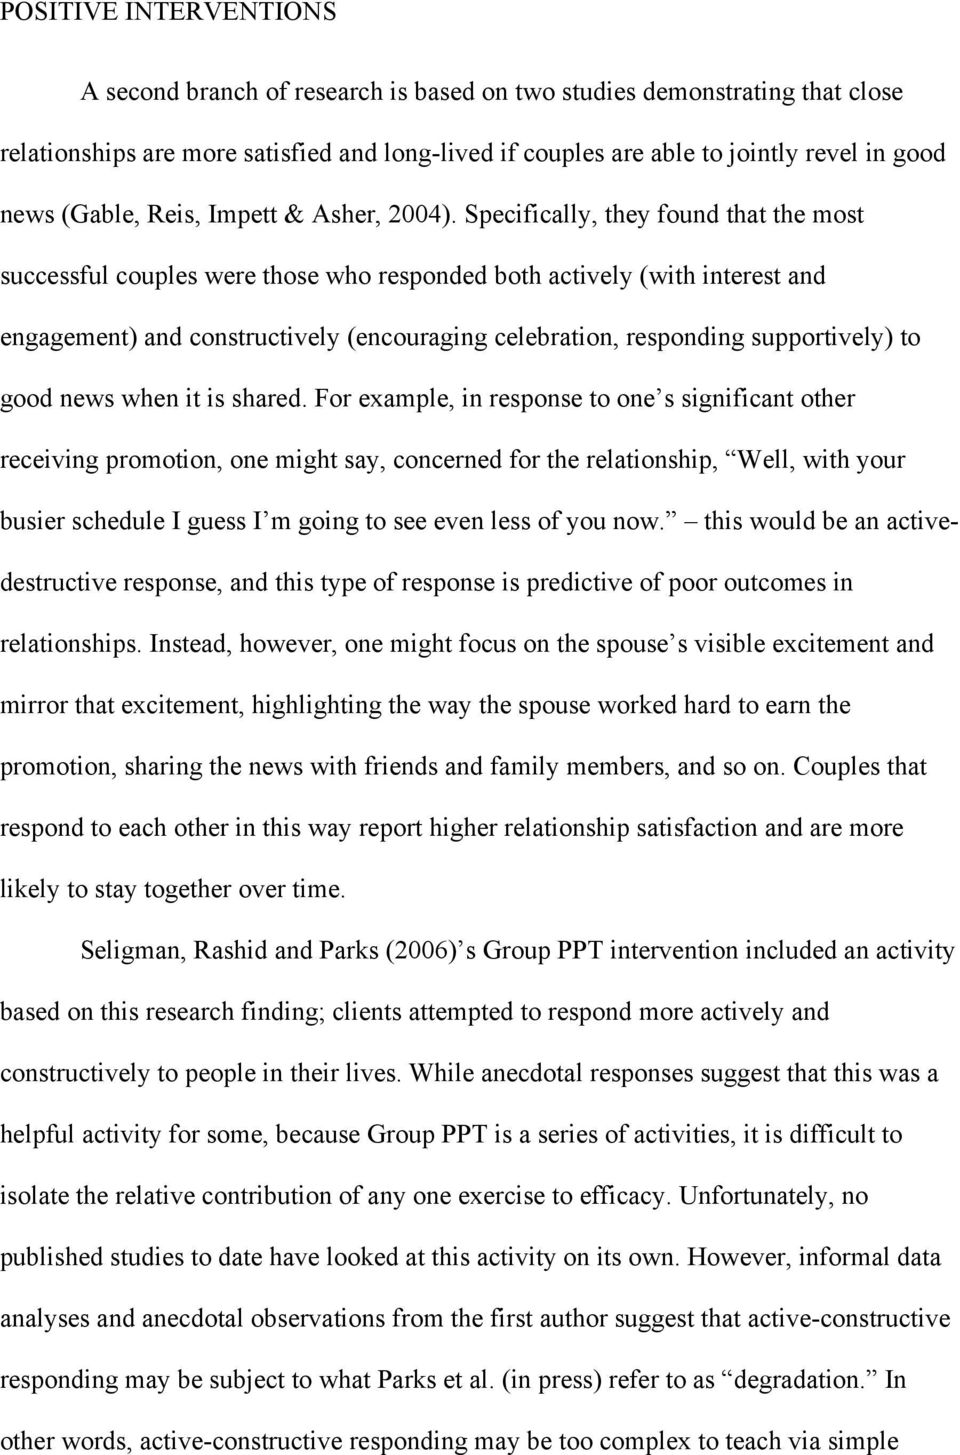 Specifically, they found that the most successful couples were those who responded both actively (with interest and engagement) and constructively (encouraging celebration, responding supportively)